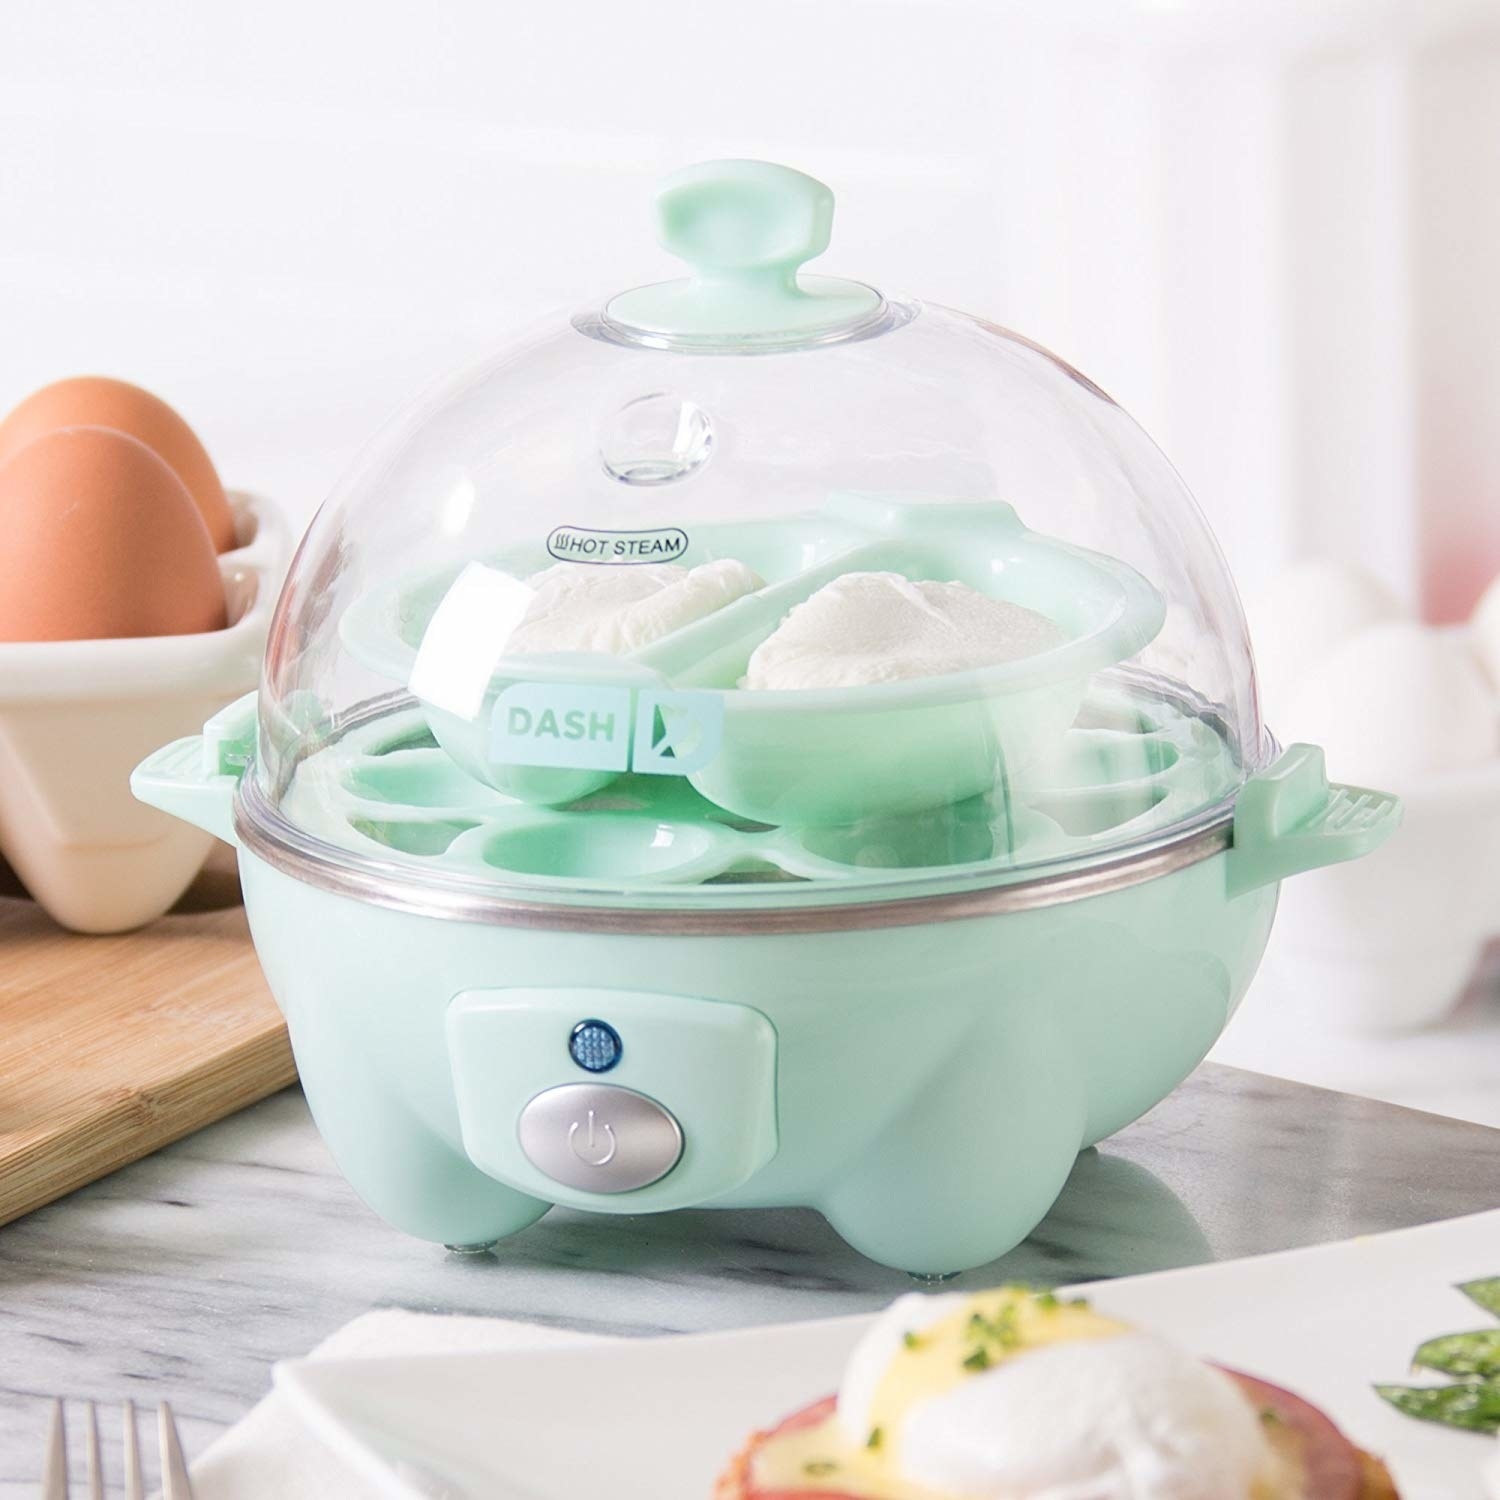 the dome-like egg cooker in mint green